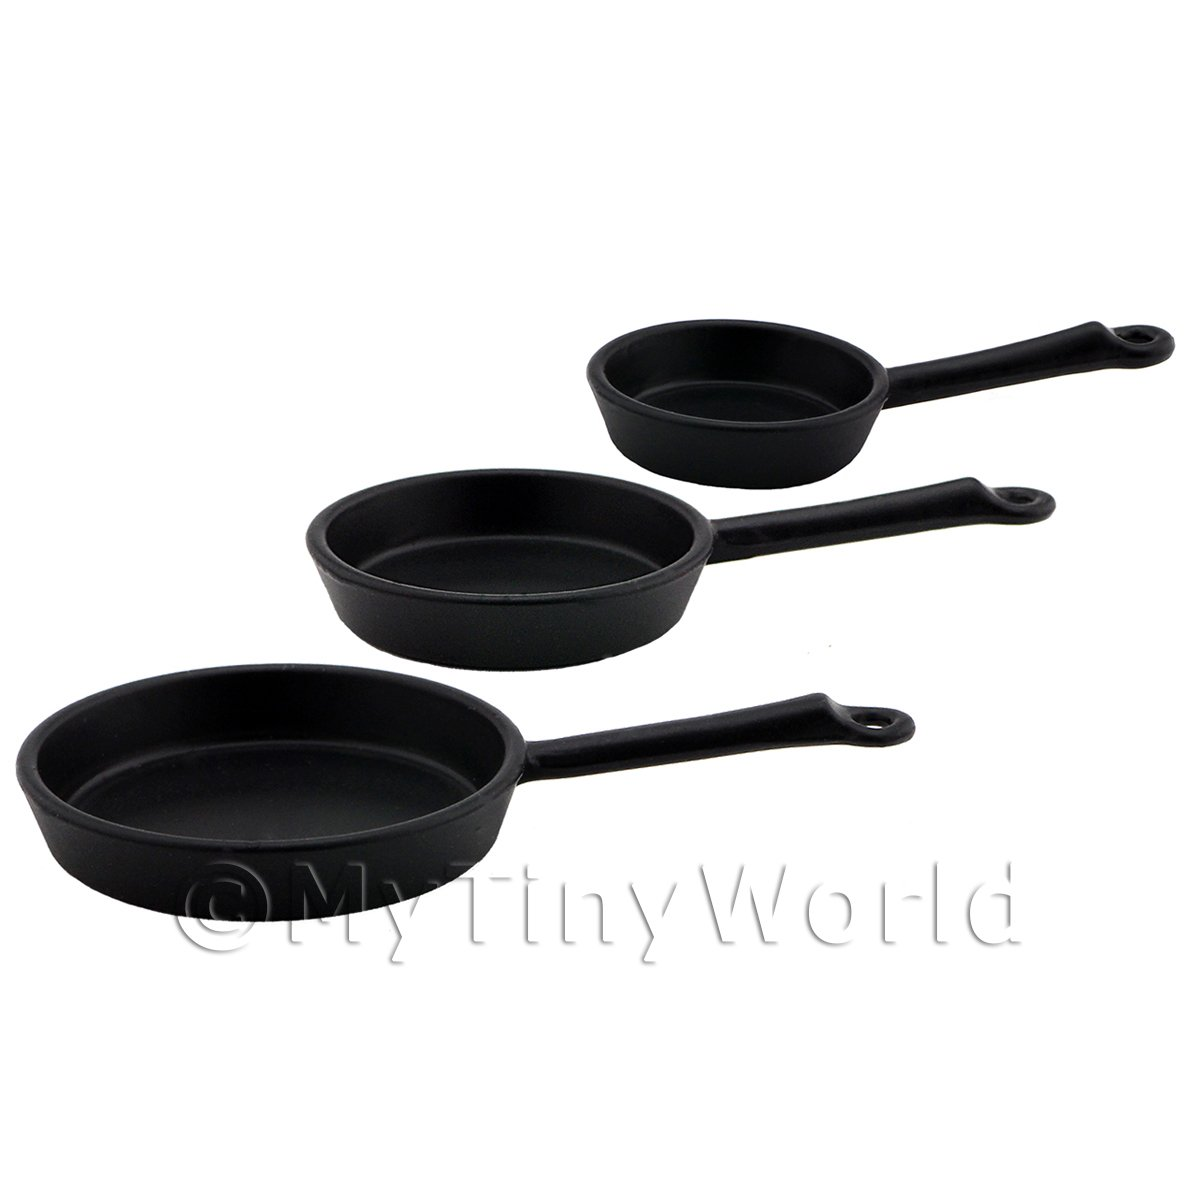 Dolls House Miniature Set of 3 High Quality Black Metal Frying Pans